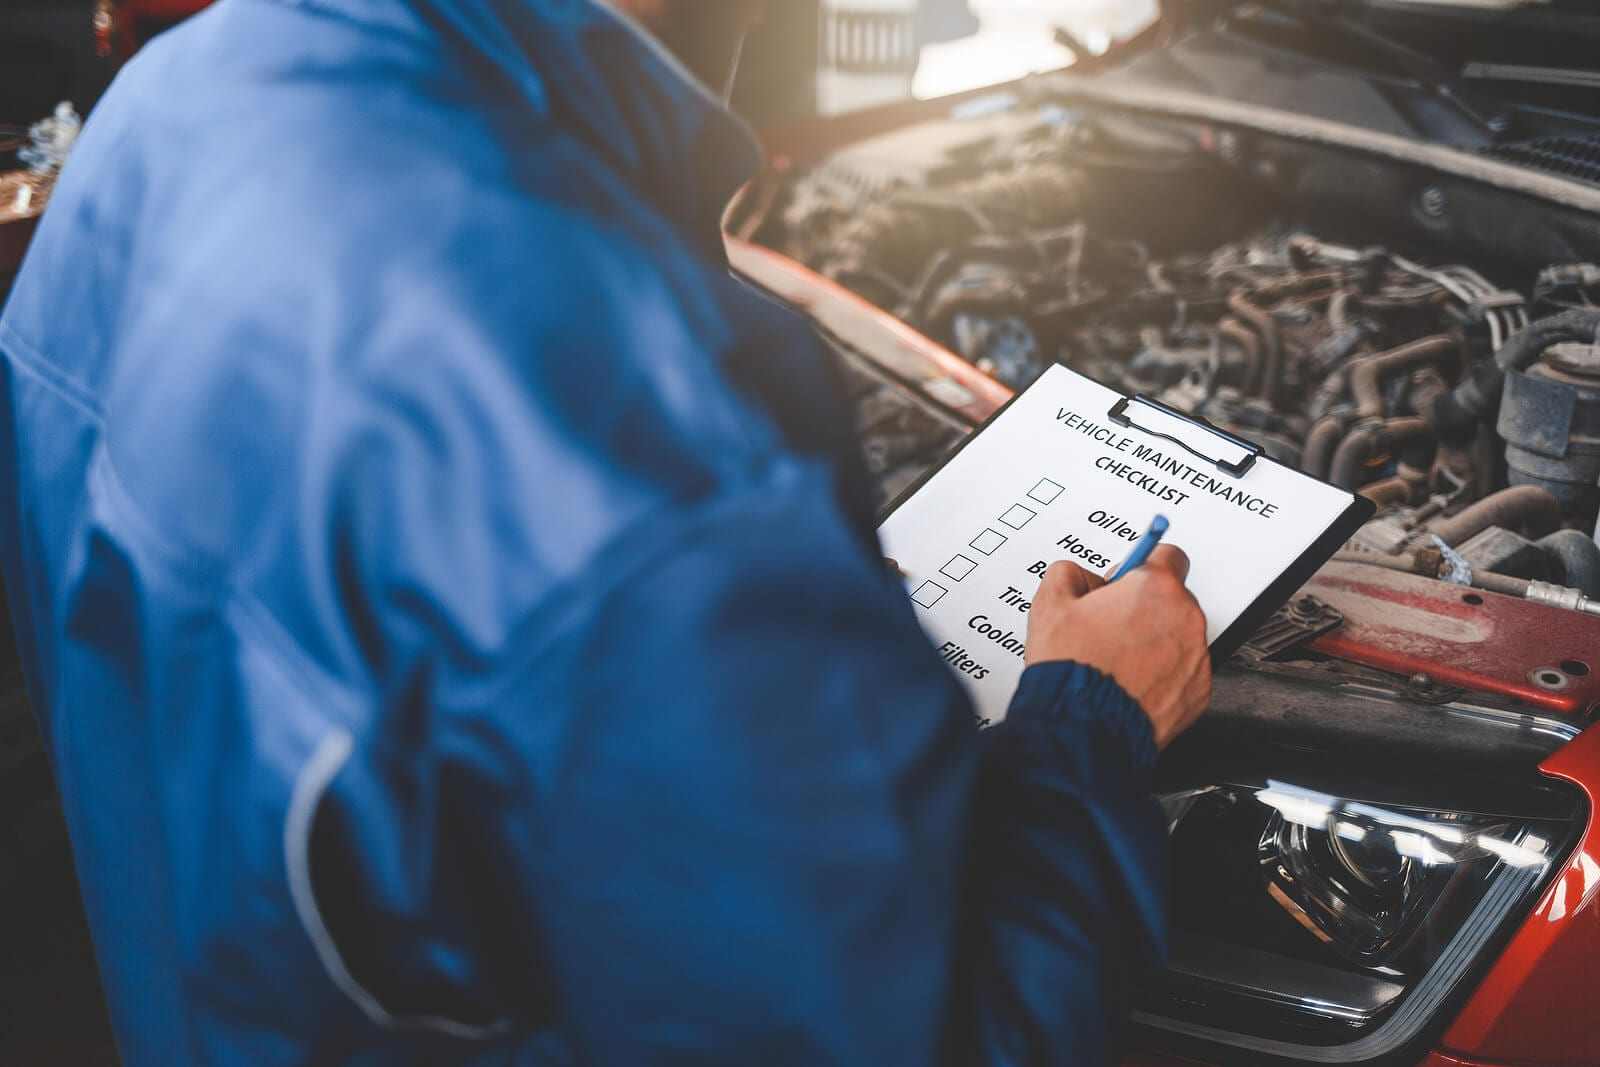 Title Loan Without a Vehicle Inspection